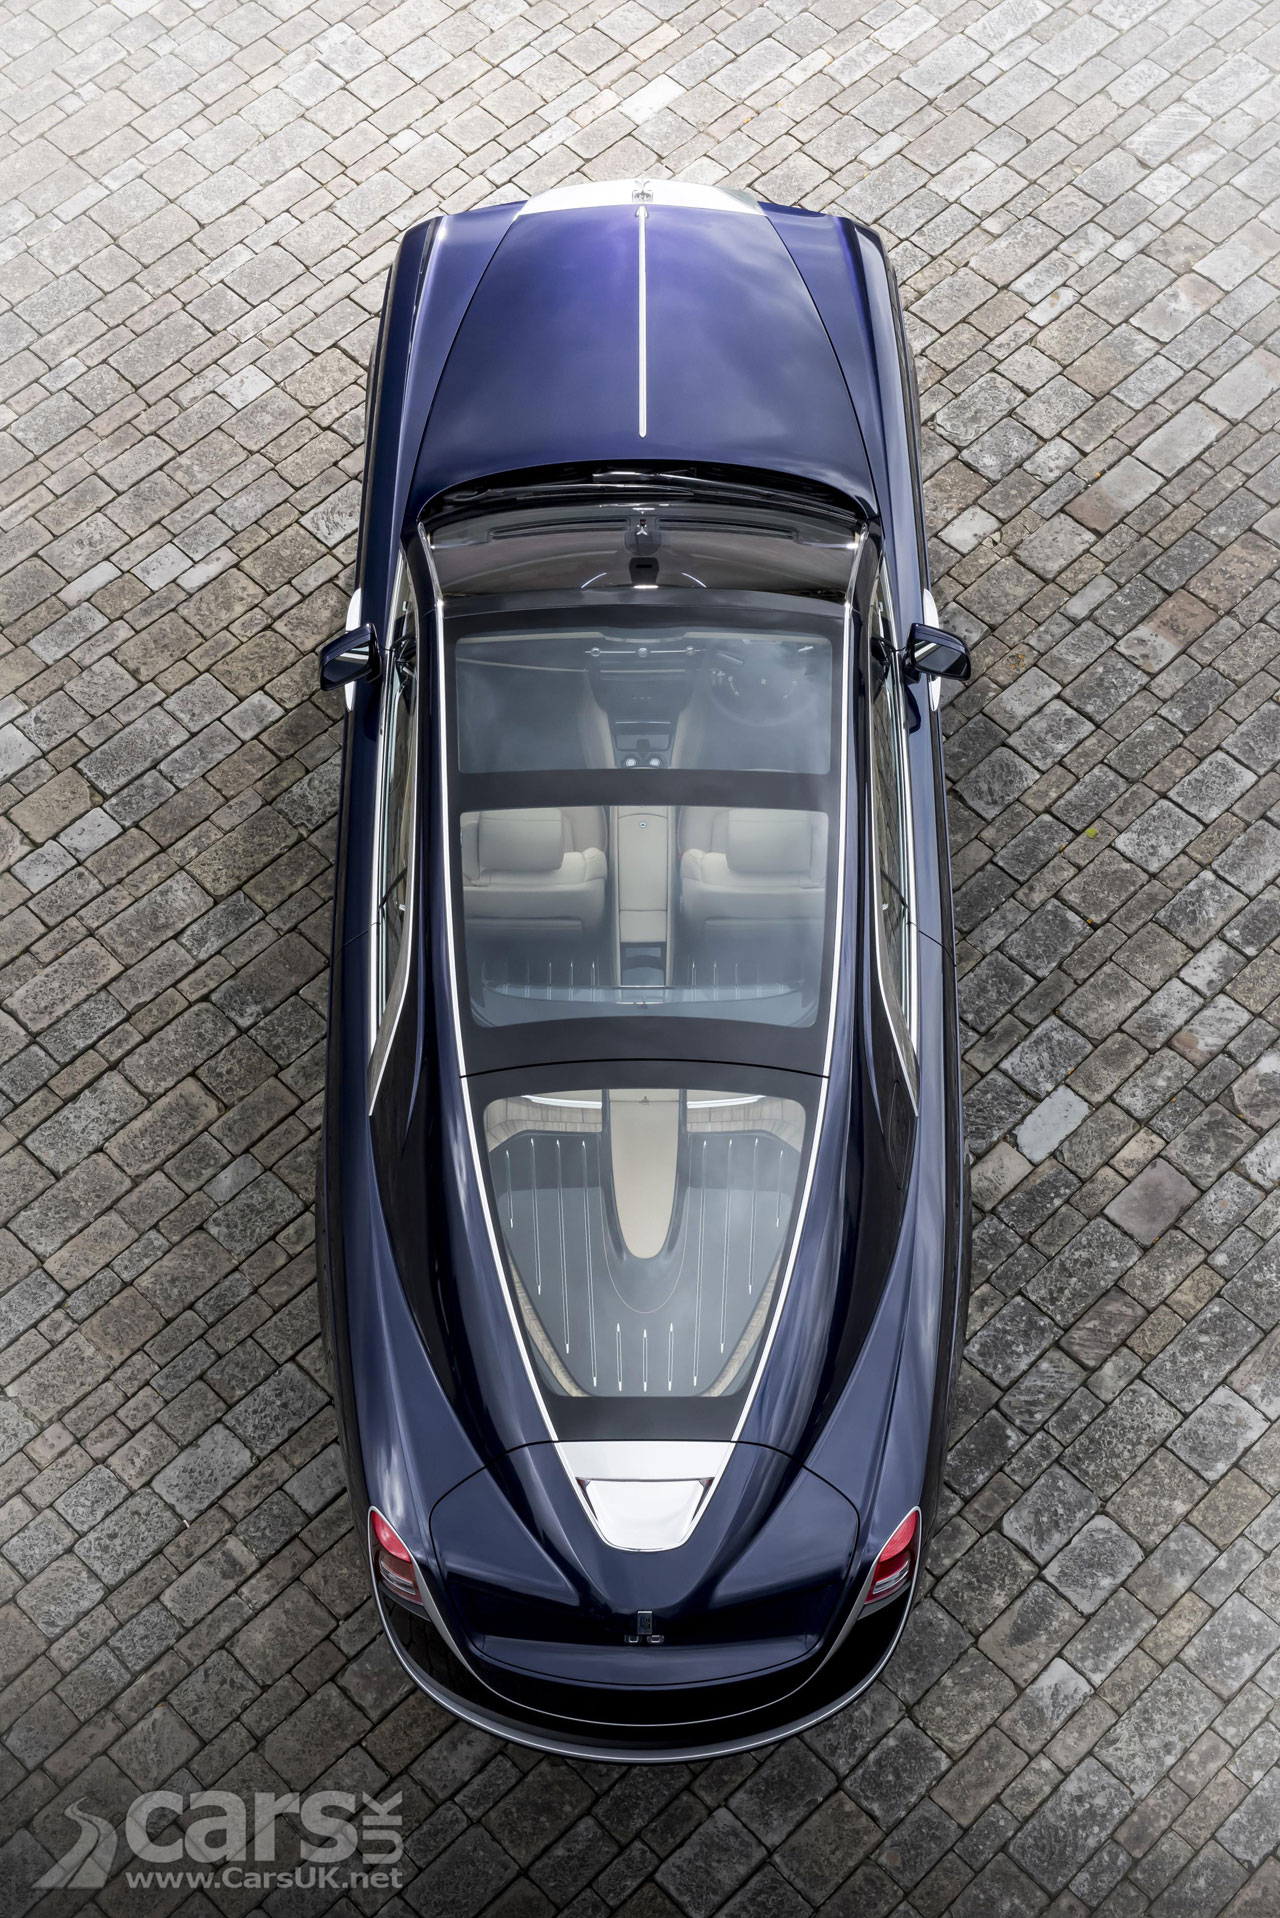 photos of the coachbuilt rolls royce sweptail